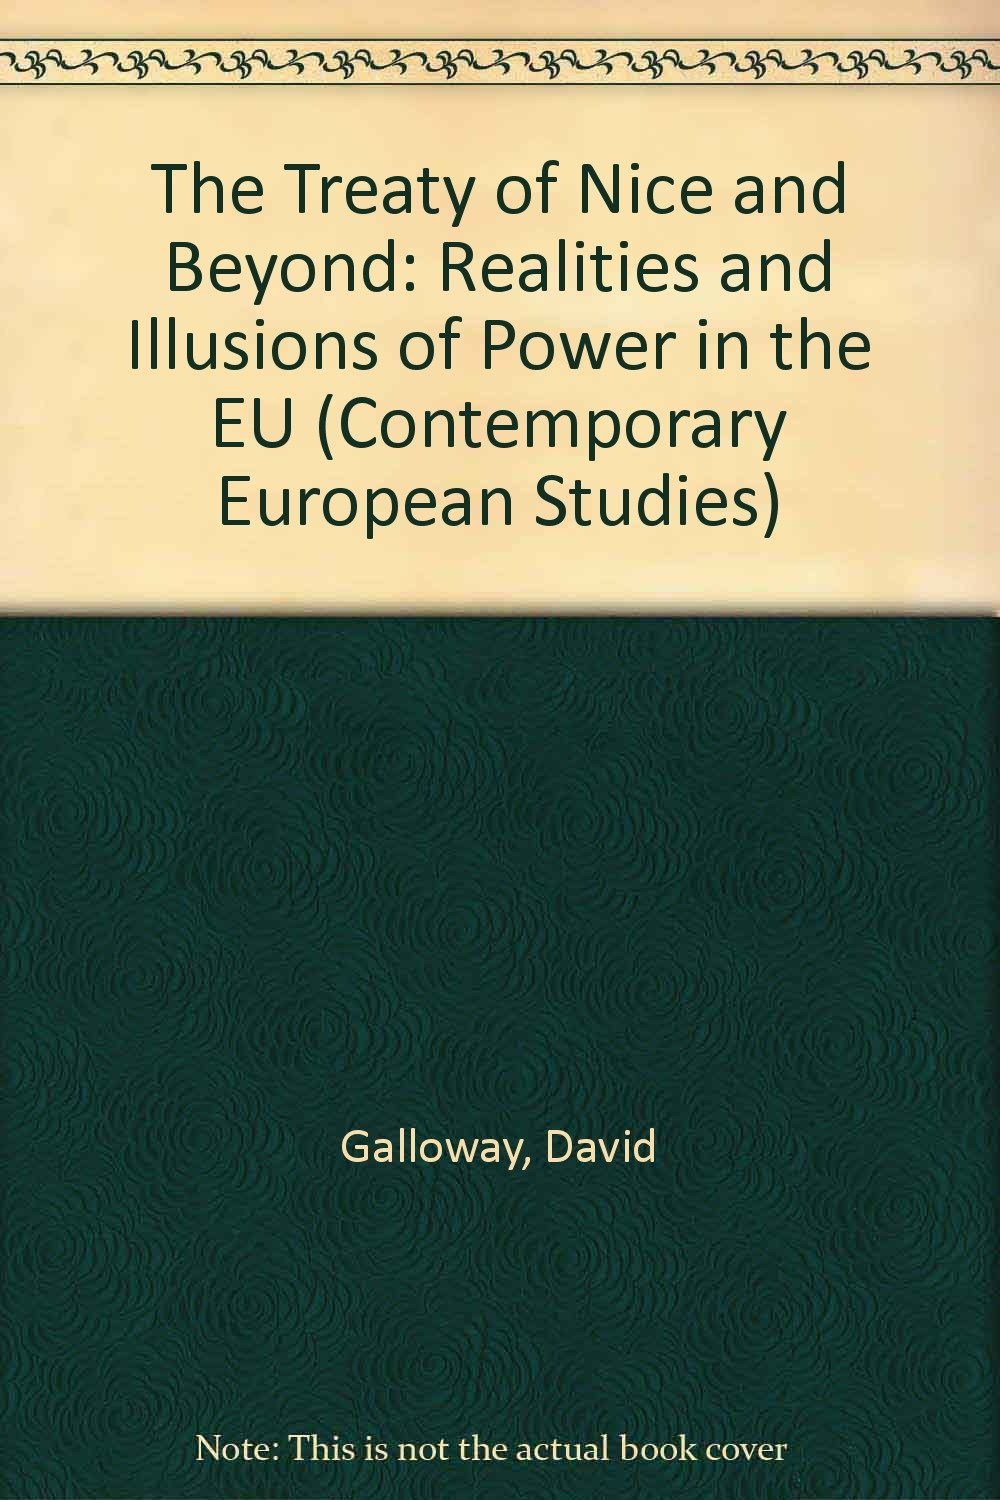 Download The Treaty of Nice and Beyond: Realities and Illusions of Power in the Eu (Contemporary European Studies, 10) PDF